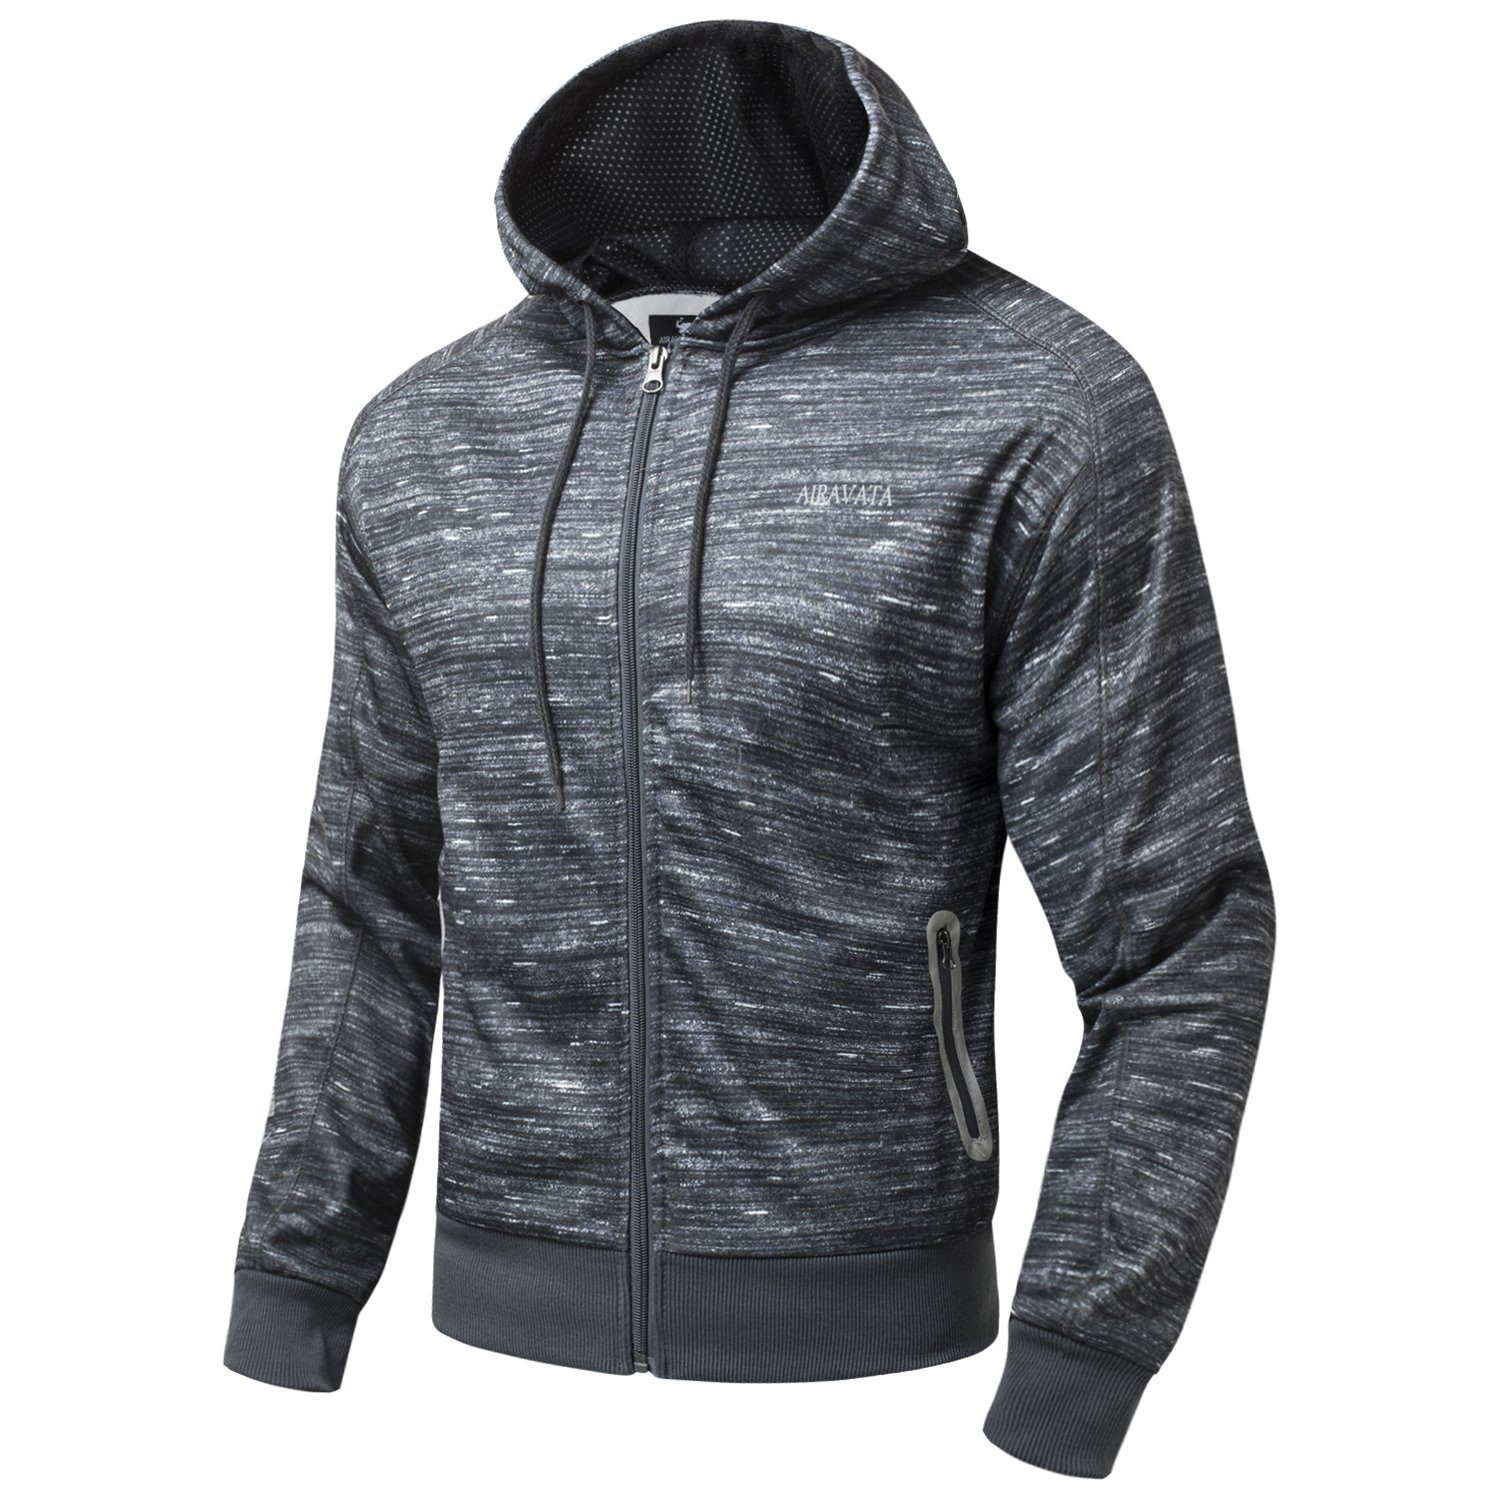 AIRAVATA Men's Hoodie Zip up Long Sleeve Printing Sports Workout Jackets